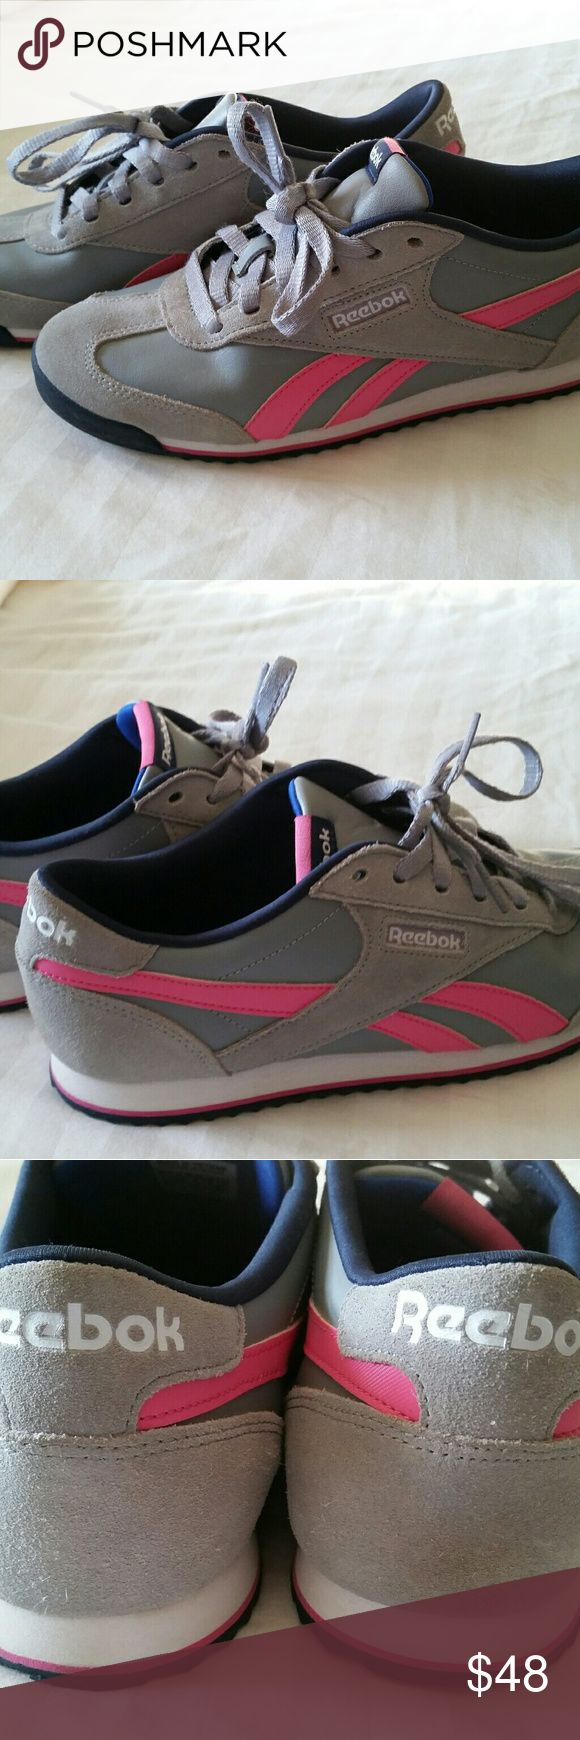 Women's Classic Reebok Running Shoes Grey suede and smooth leather with pink accent  Light discoloration on back Right heal, not super noticeable or obvious. Reebok Shoes Sneakers